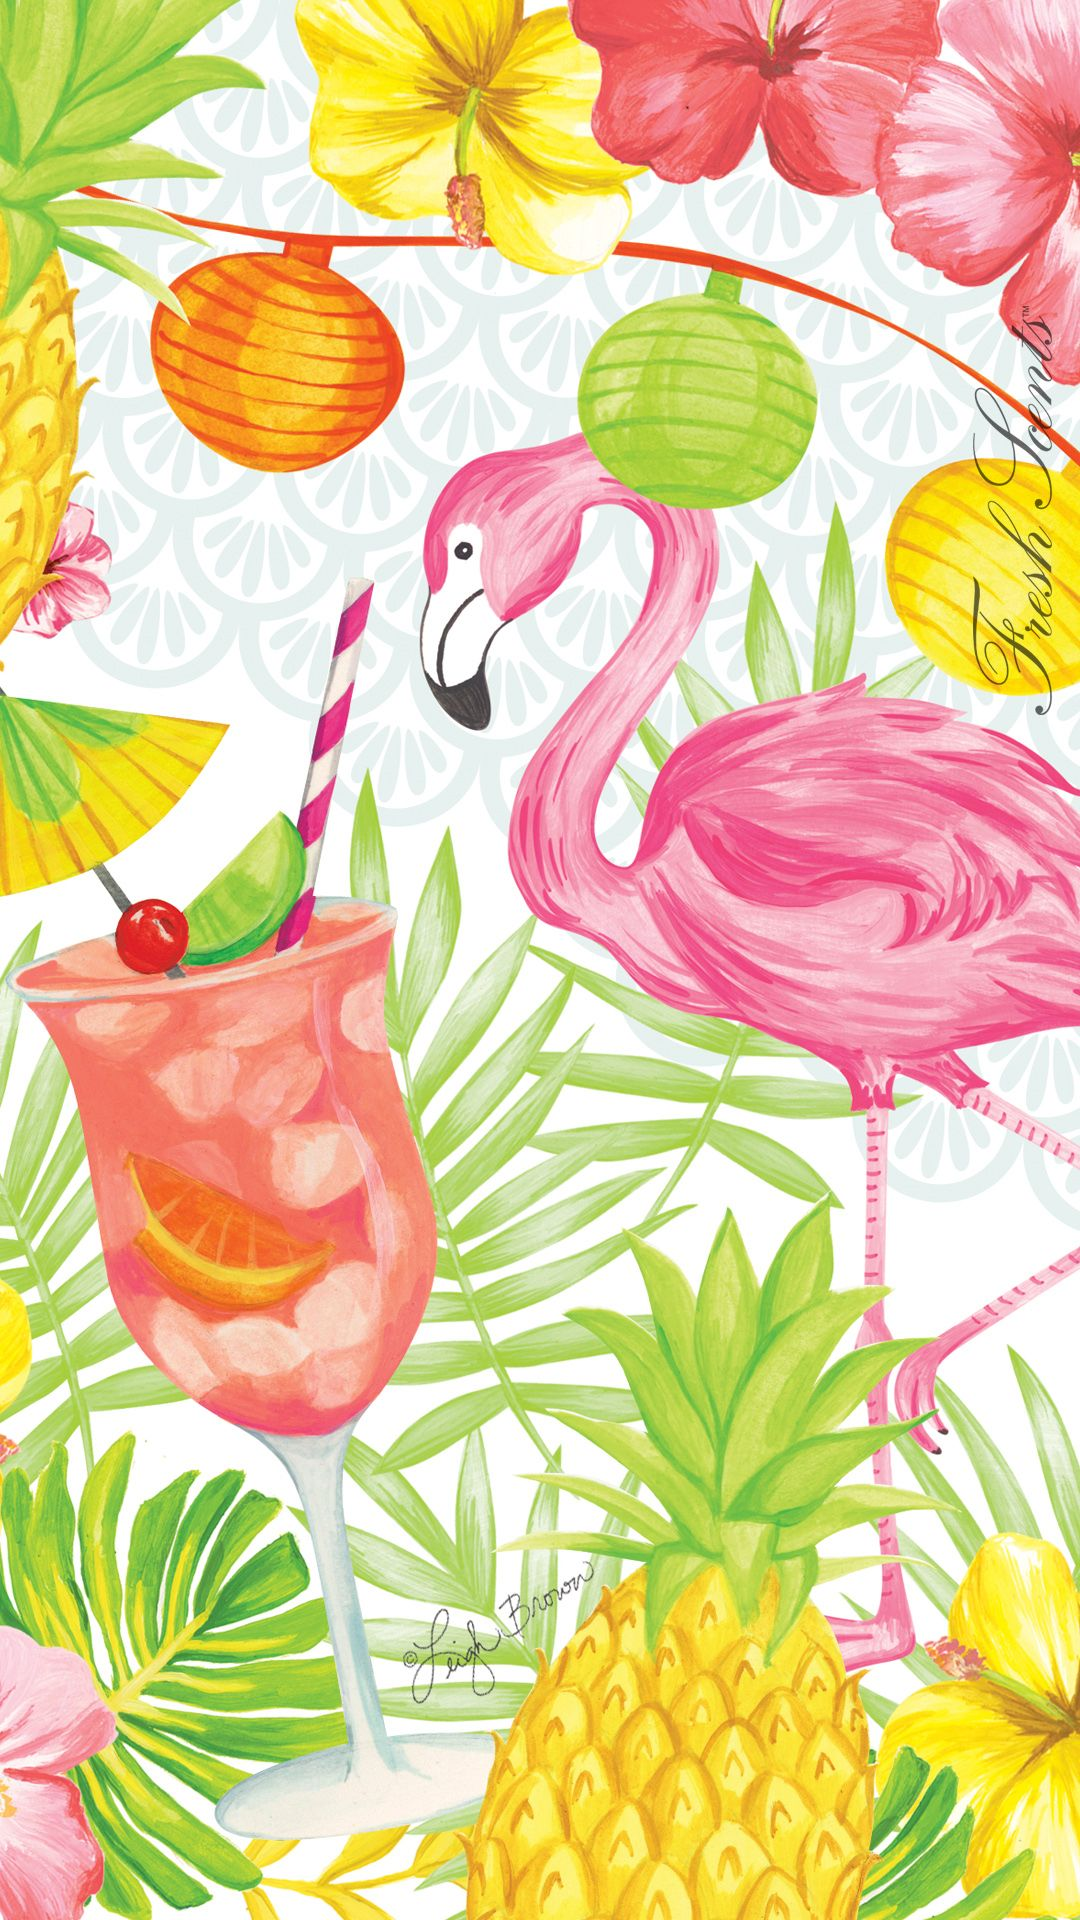 Background flamingo flamingos iphone wallpaper wallpaper - Carry The Beautiful Flamingo Party Sachet Artwork With You For A Little Taste Of Flamingo Wallpaper Summer Wallpaper Iphone Wallpaper Summer Backgrounds